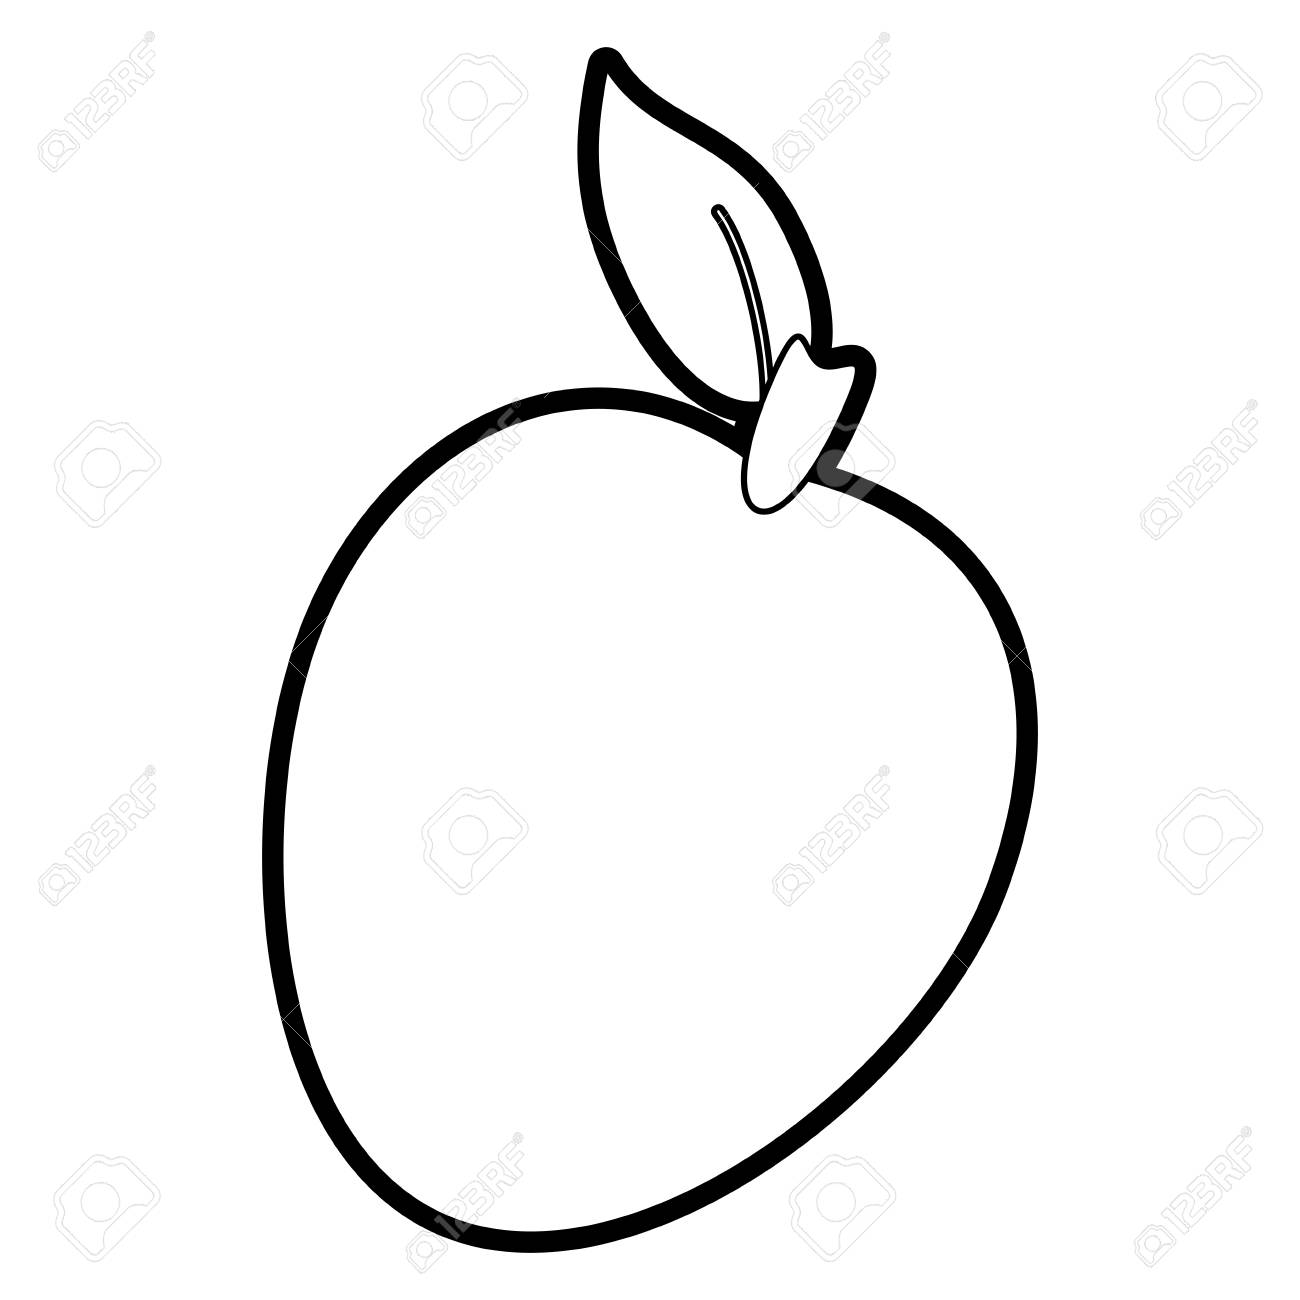 Flat Line Uncolored Mango Over White Background Vector Illustration ... for Clipart Mango Black And White  539wja